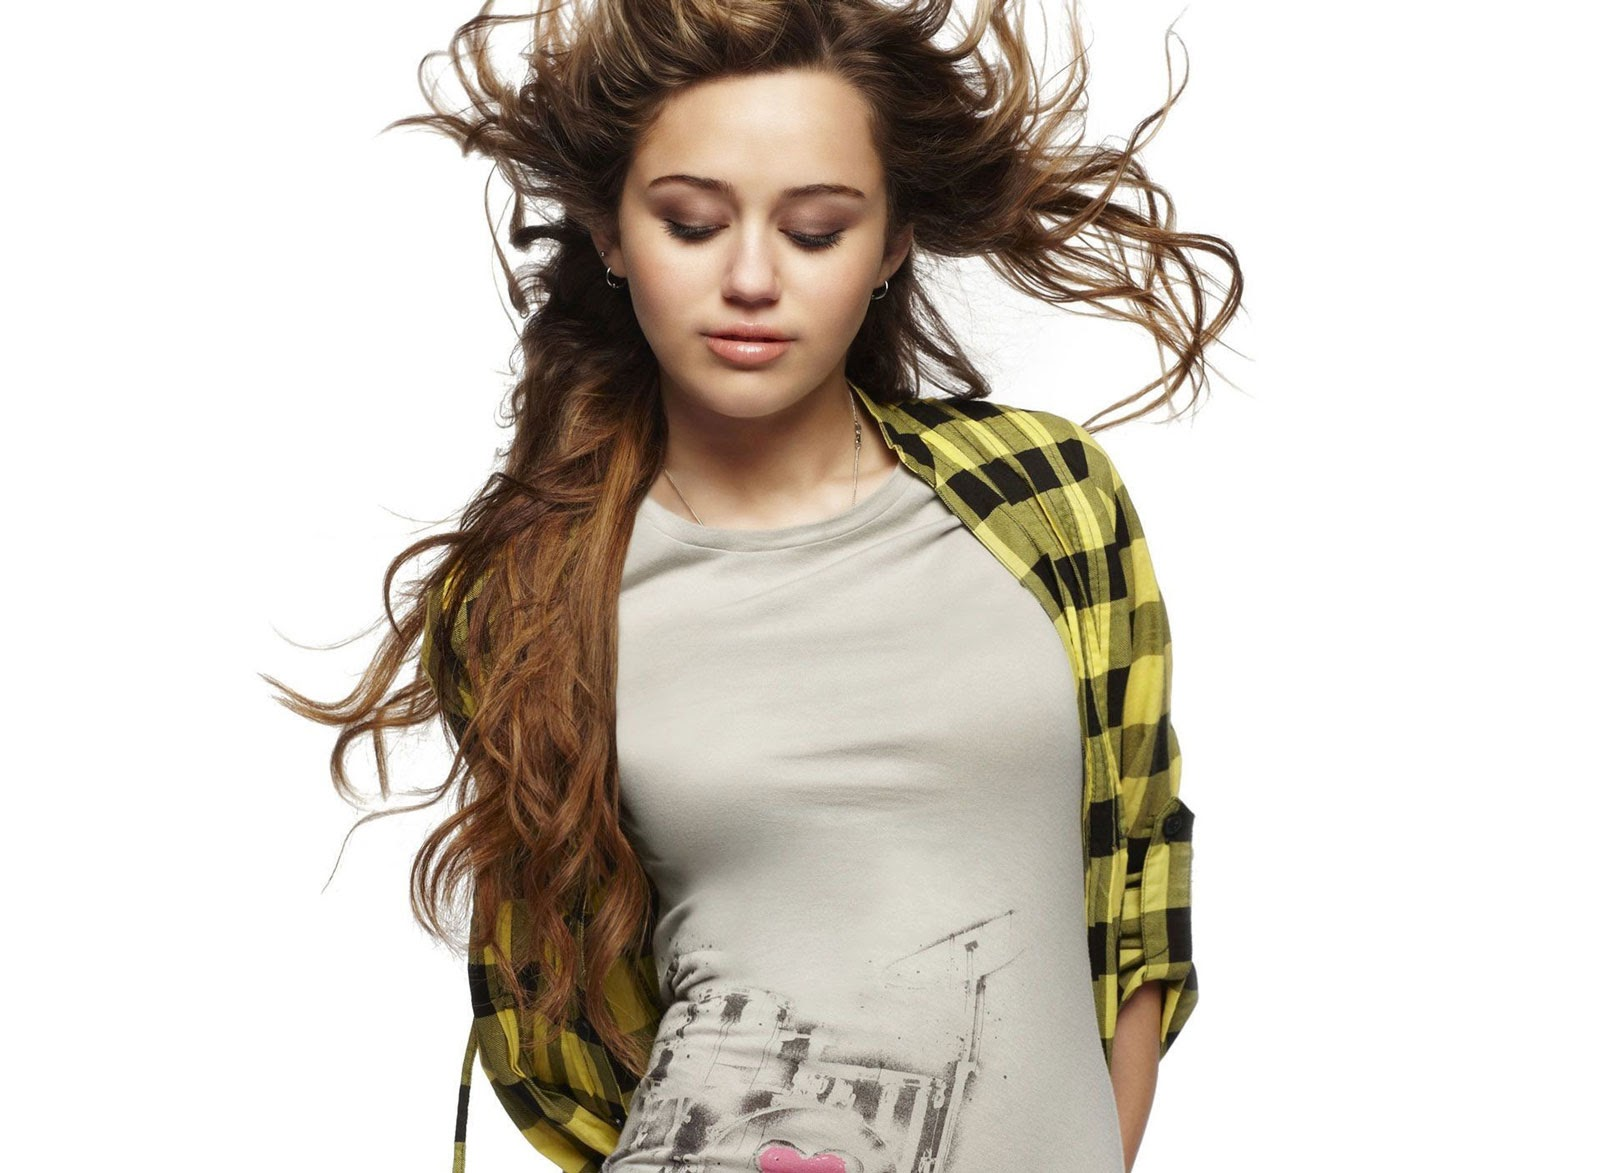 Black And White Pin Up Girl Wallpaper Miley Cyrus Unseen Magnificent Wallpapers Feel Free Love